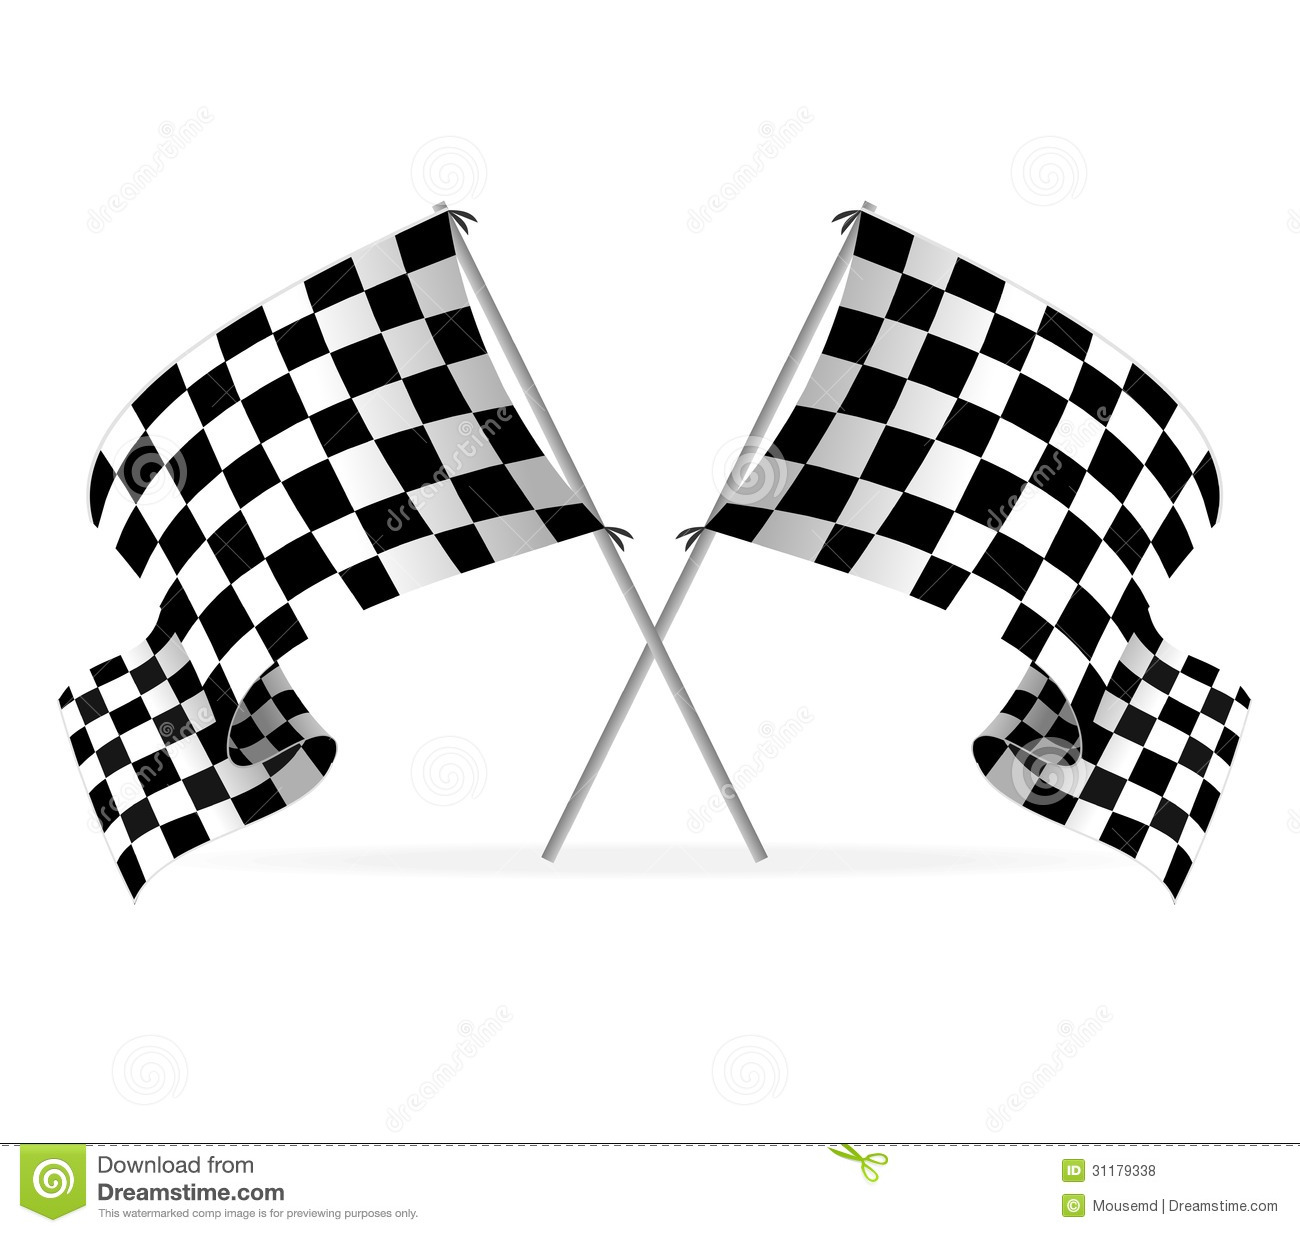 Sprint Car Zone Coloring Pages Sketch Templates also Flag Race 1279 as well 411611 moreover 343118065331970324 together with 559642691168895842. on nascar race car clip art